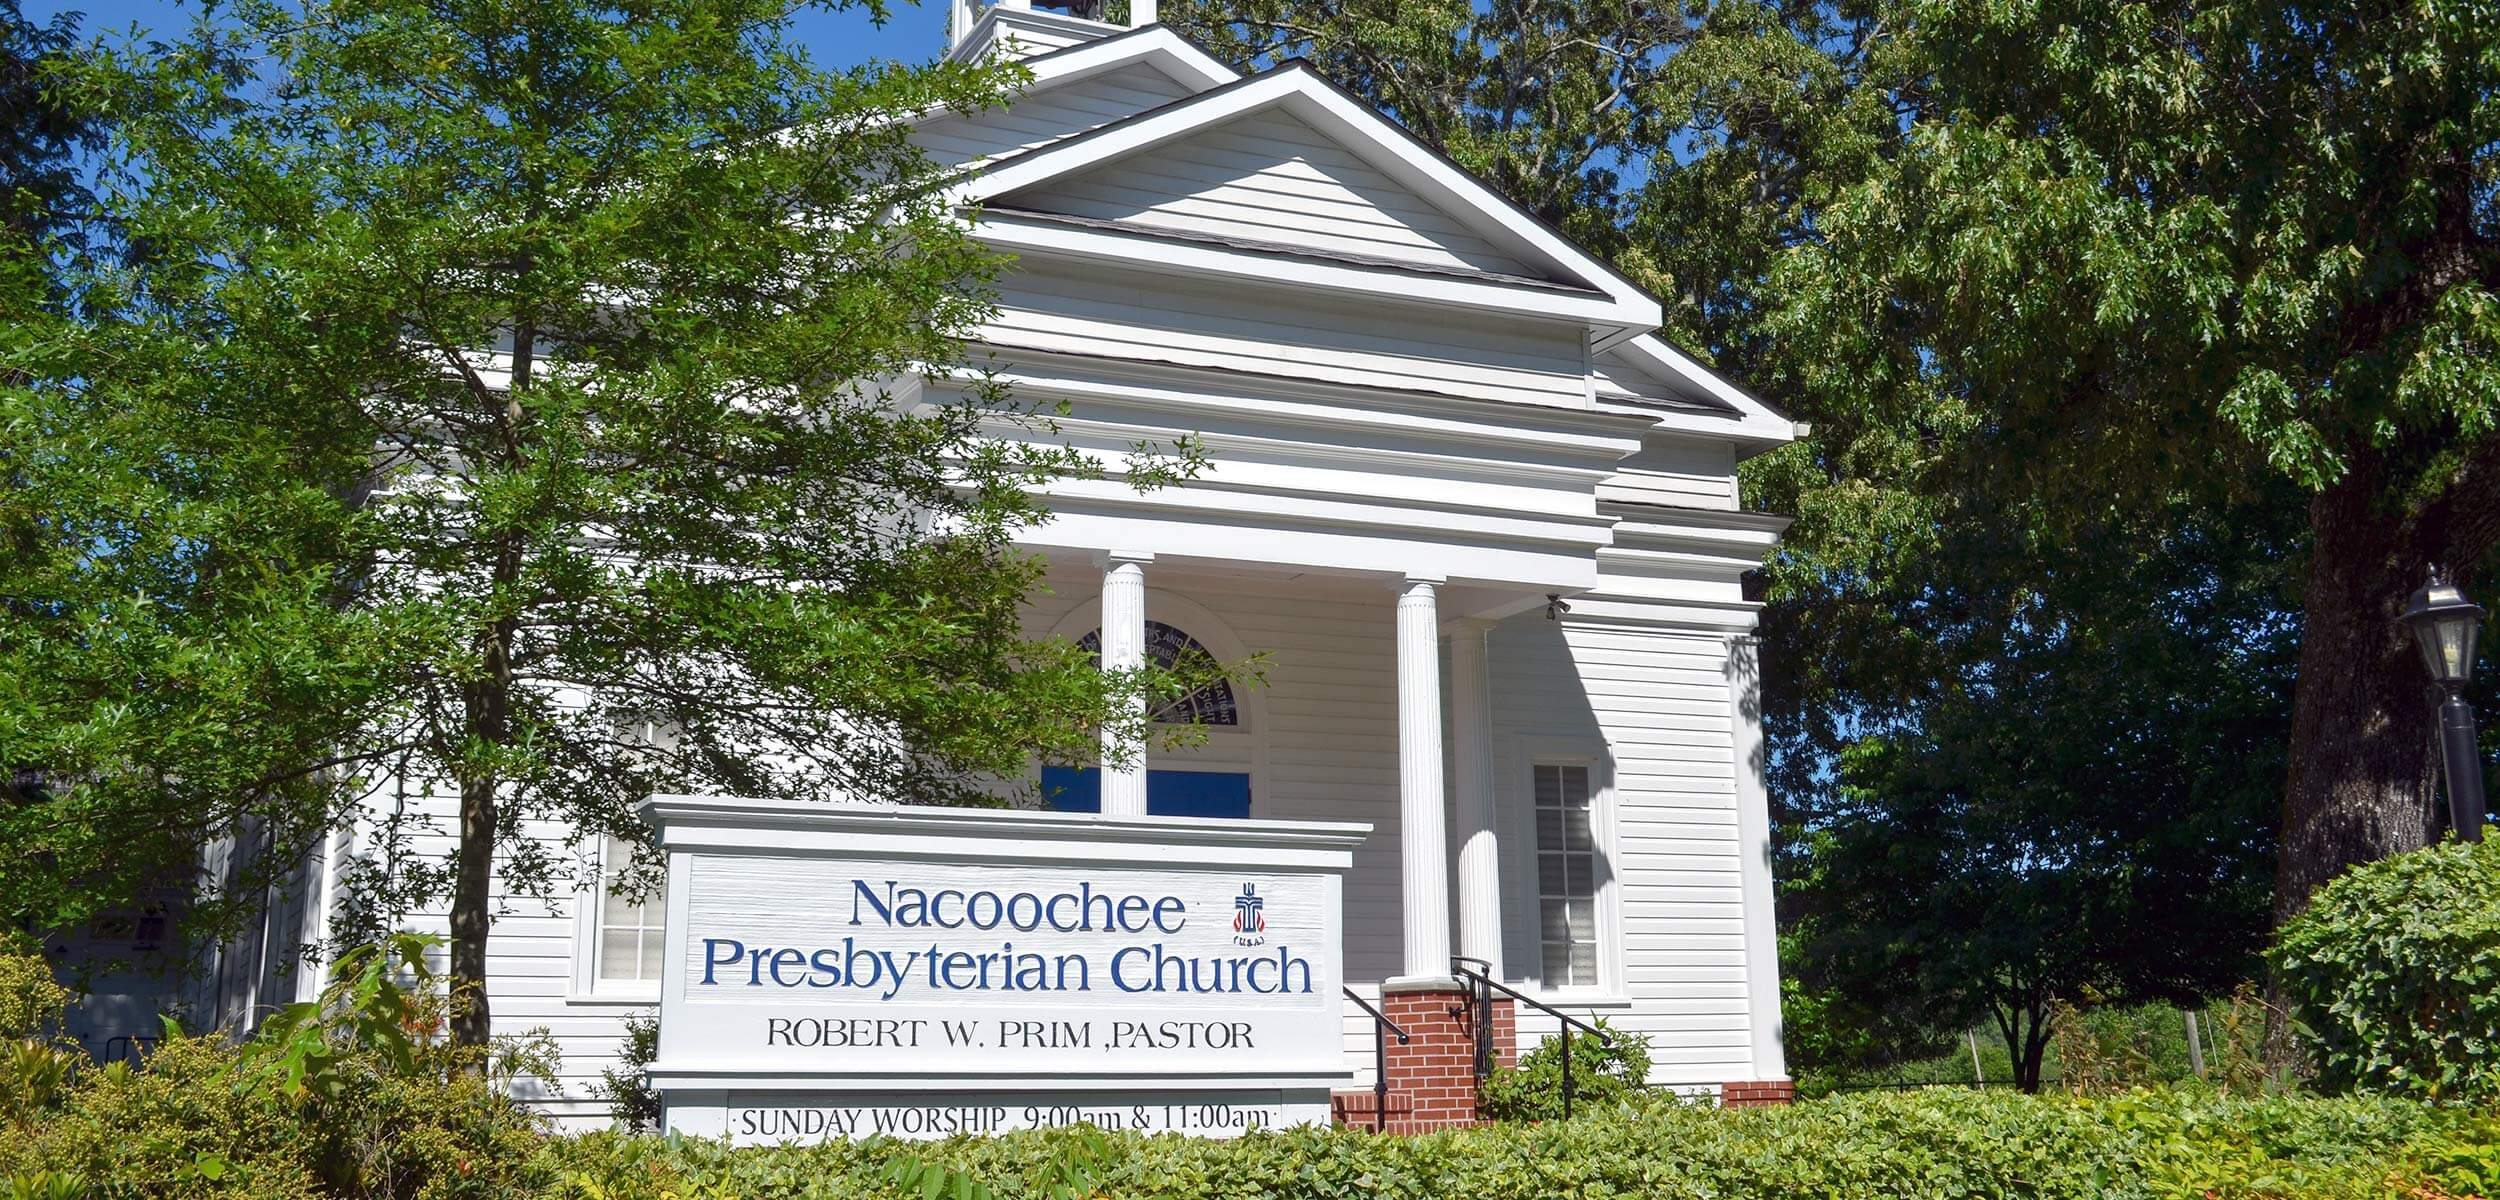 Nacoochee Presbyterian Church